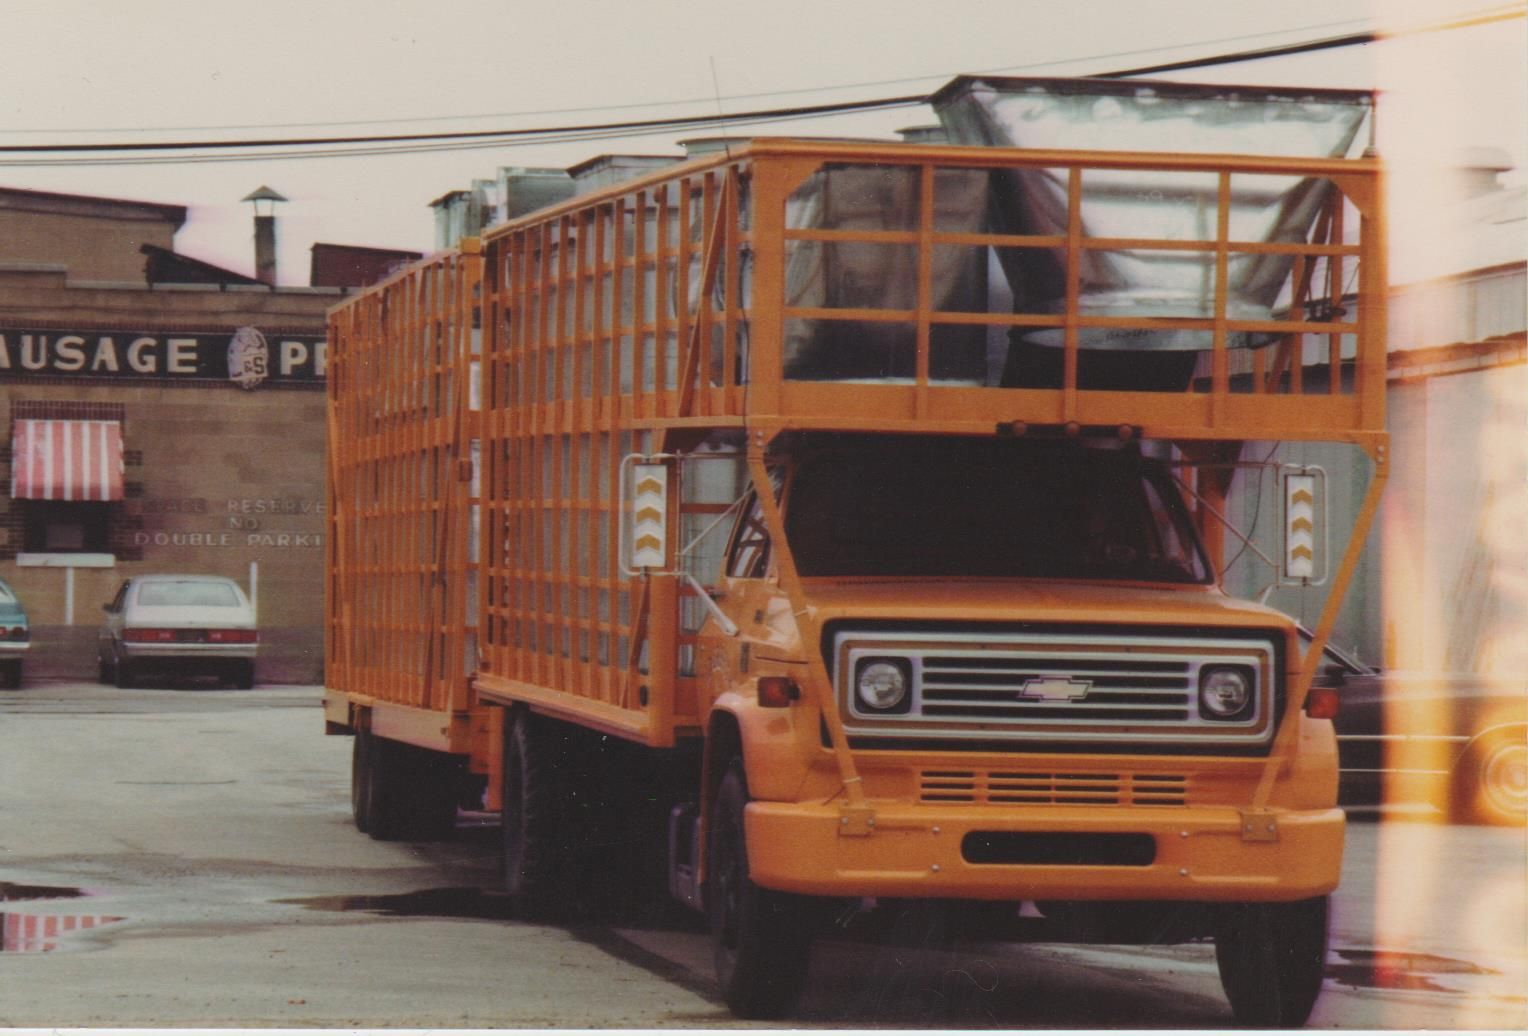 A Truck Carrying Steel Products